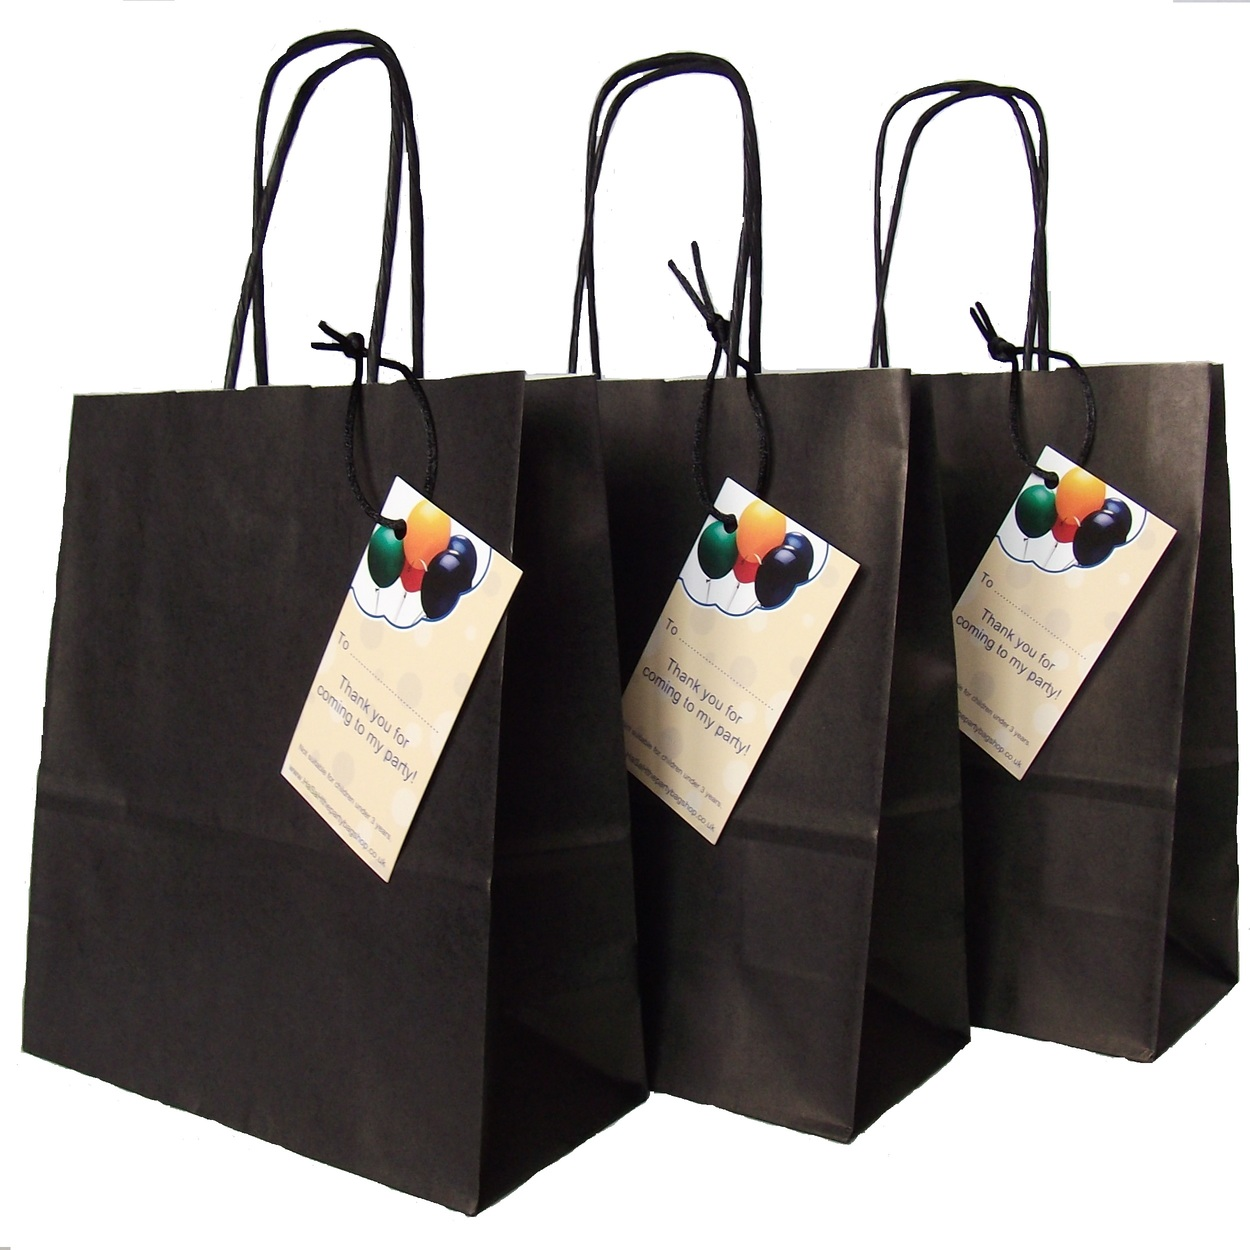 54c128447c32 Luxury Black Paper Party Bags with Handles and Thank You Label